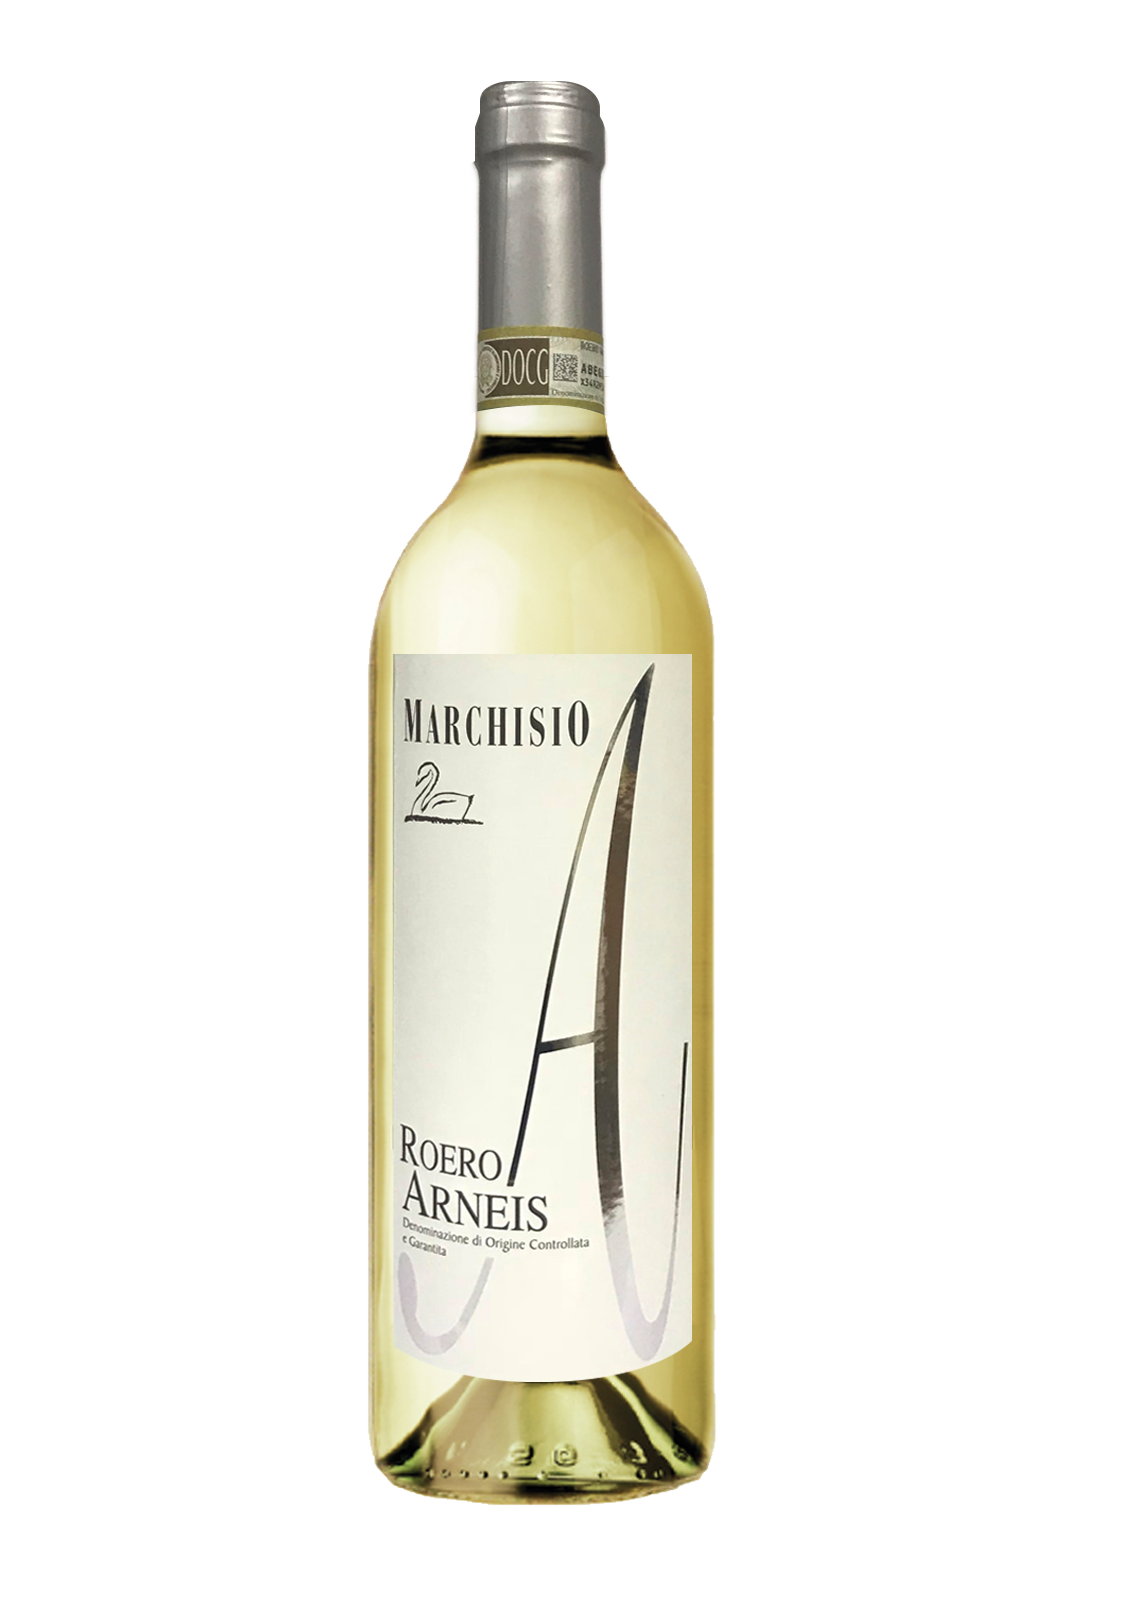 MARCHISIO ROERO ARNEIS DOCG 75CL 2017